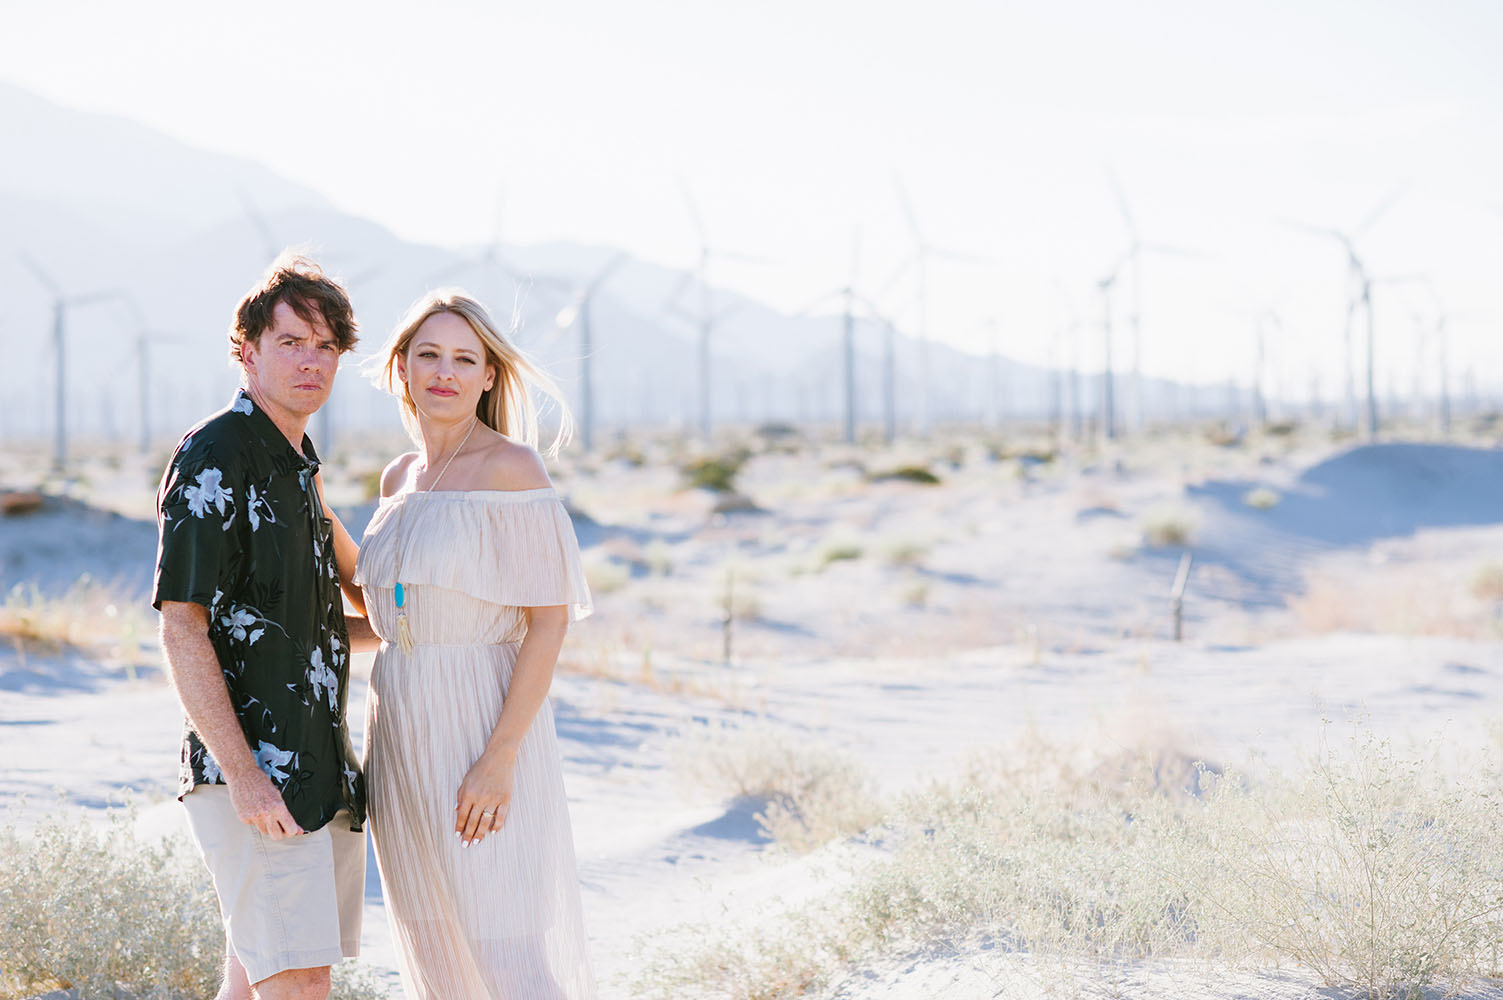 engaged couple in front of wind turbines in California